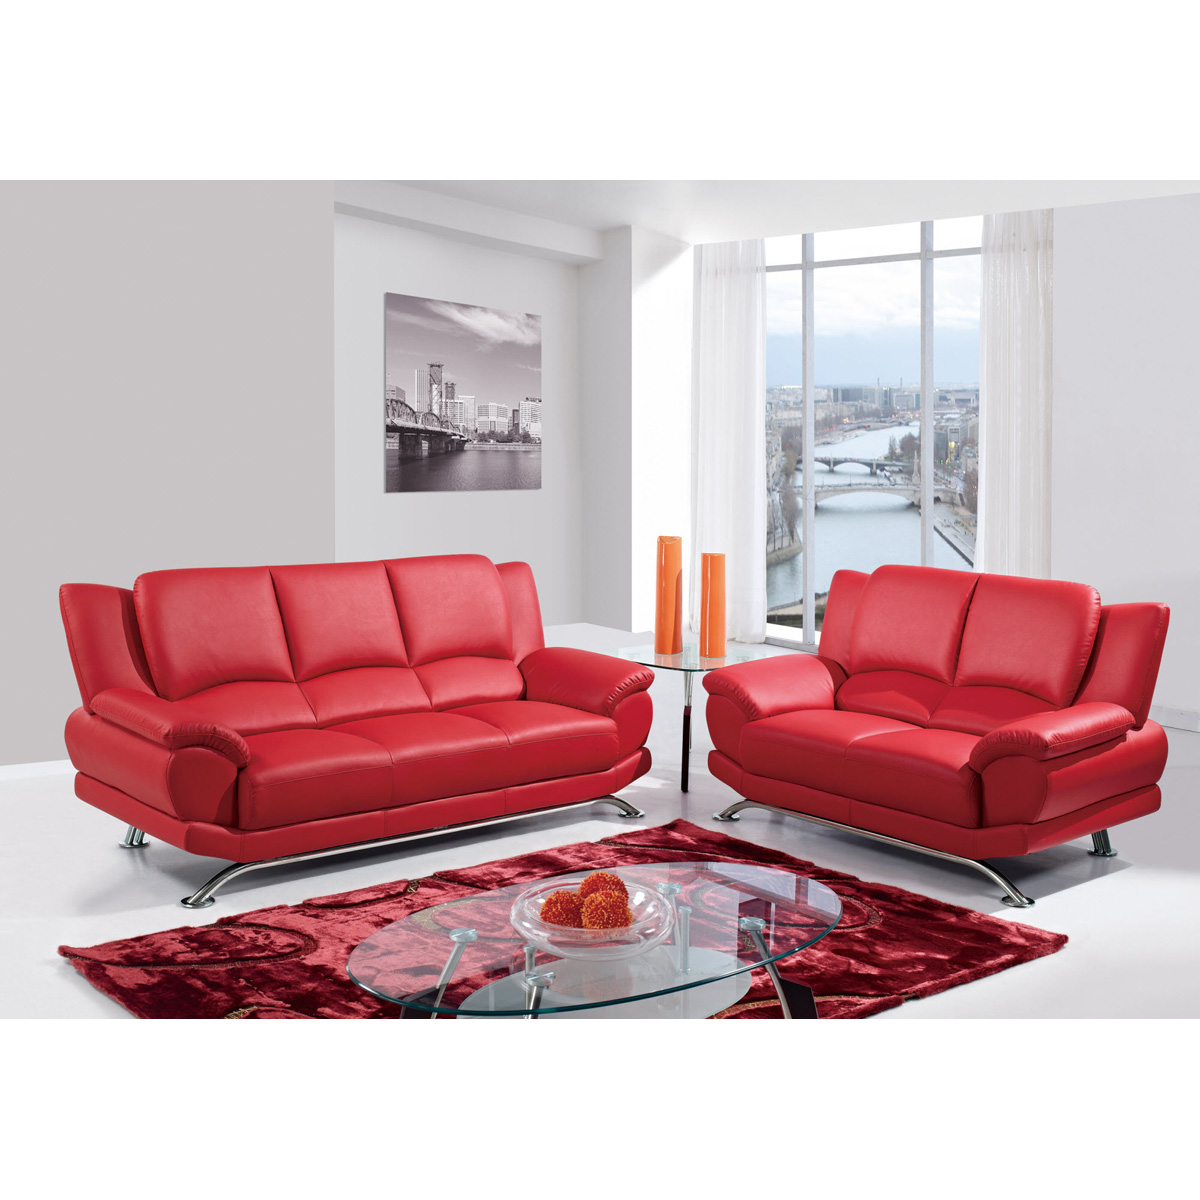 Jesus leather sofa set red dcg stores for V furniture outlet palmdale